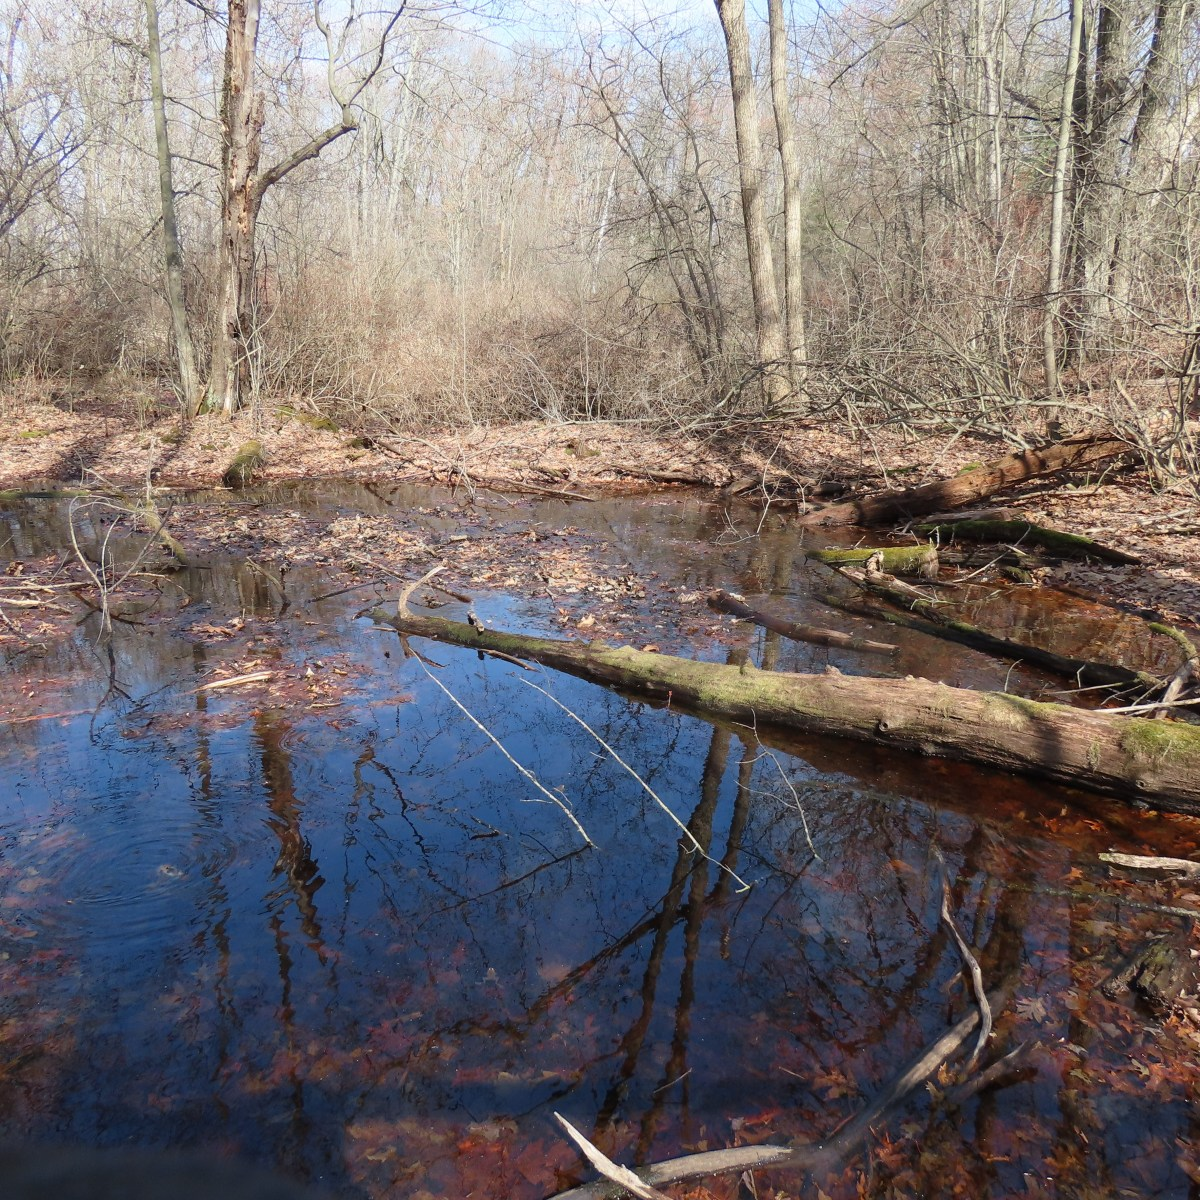 A vernal pond with a large, fallen log partially bisecting it